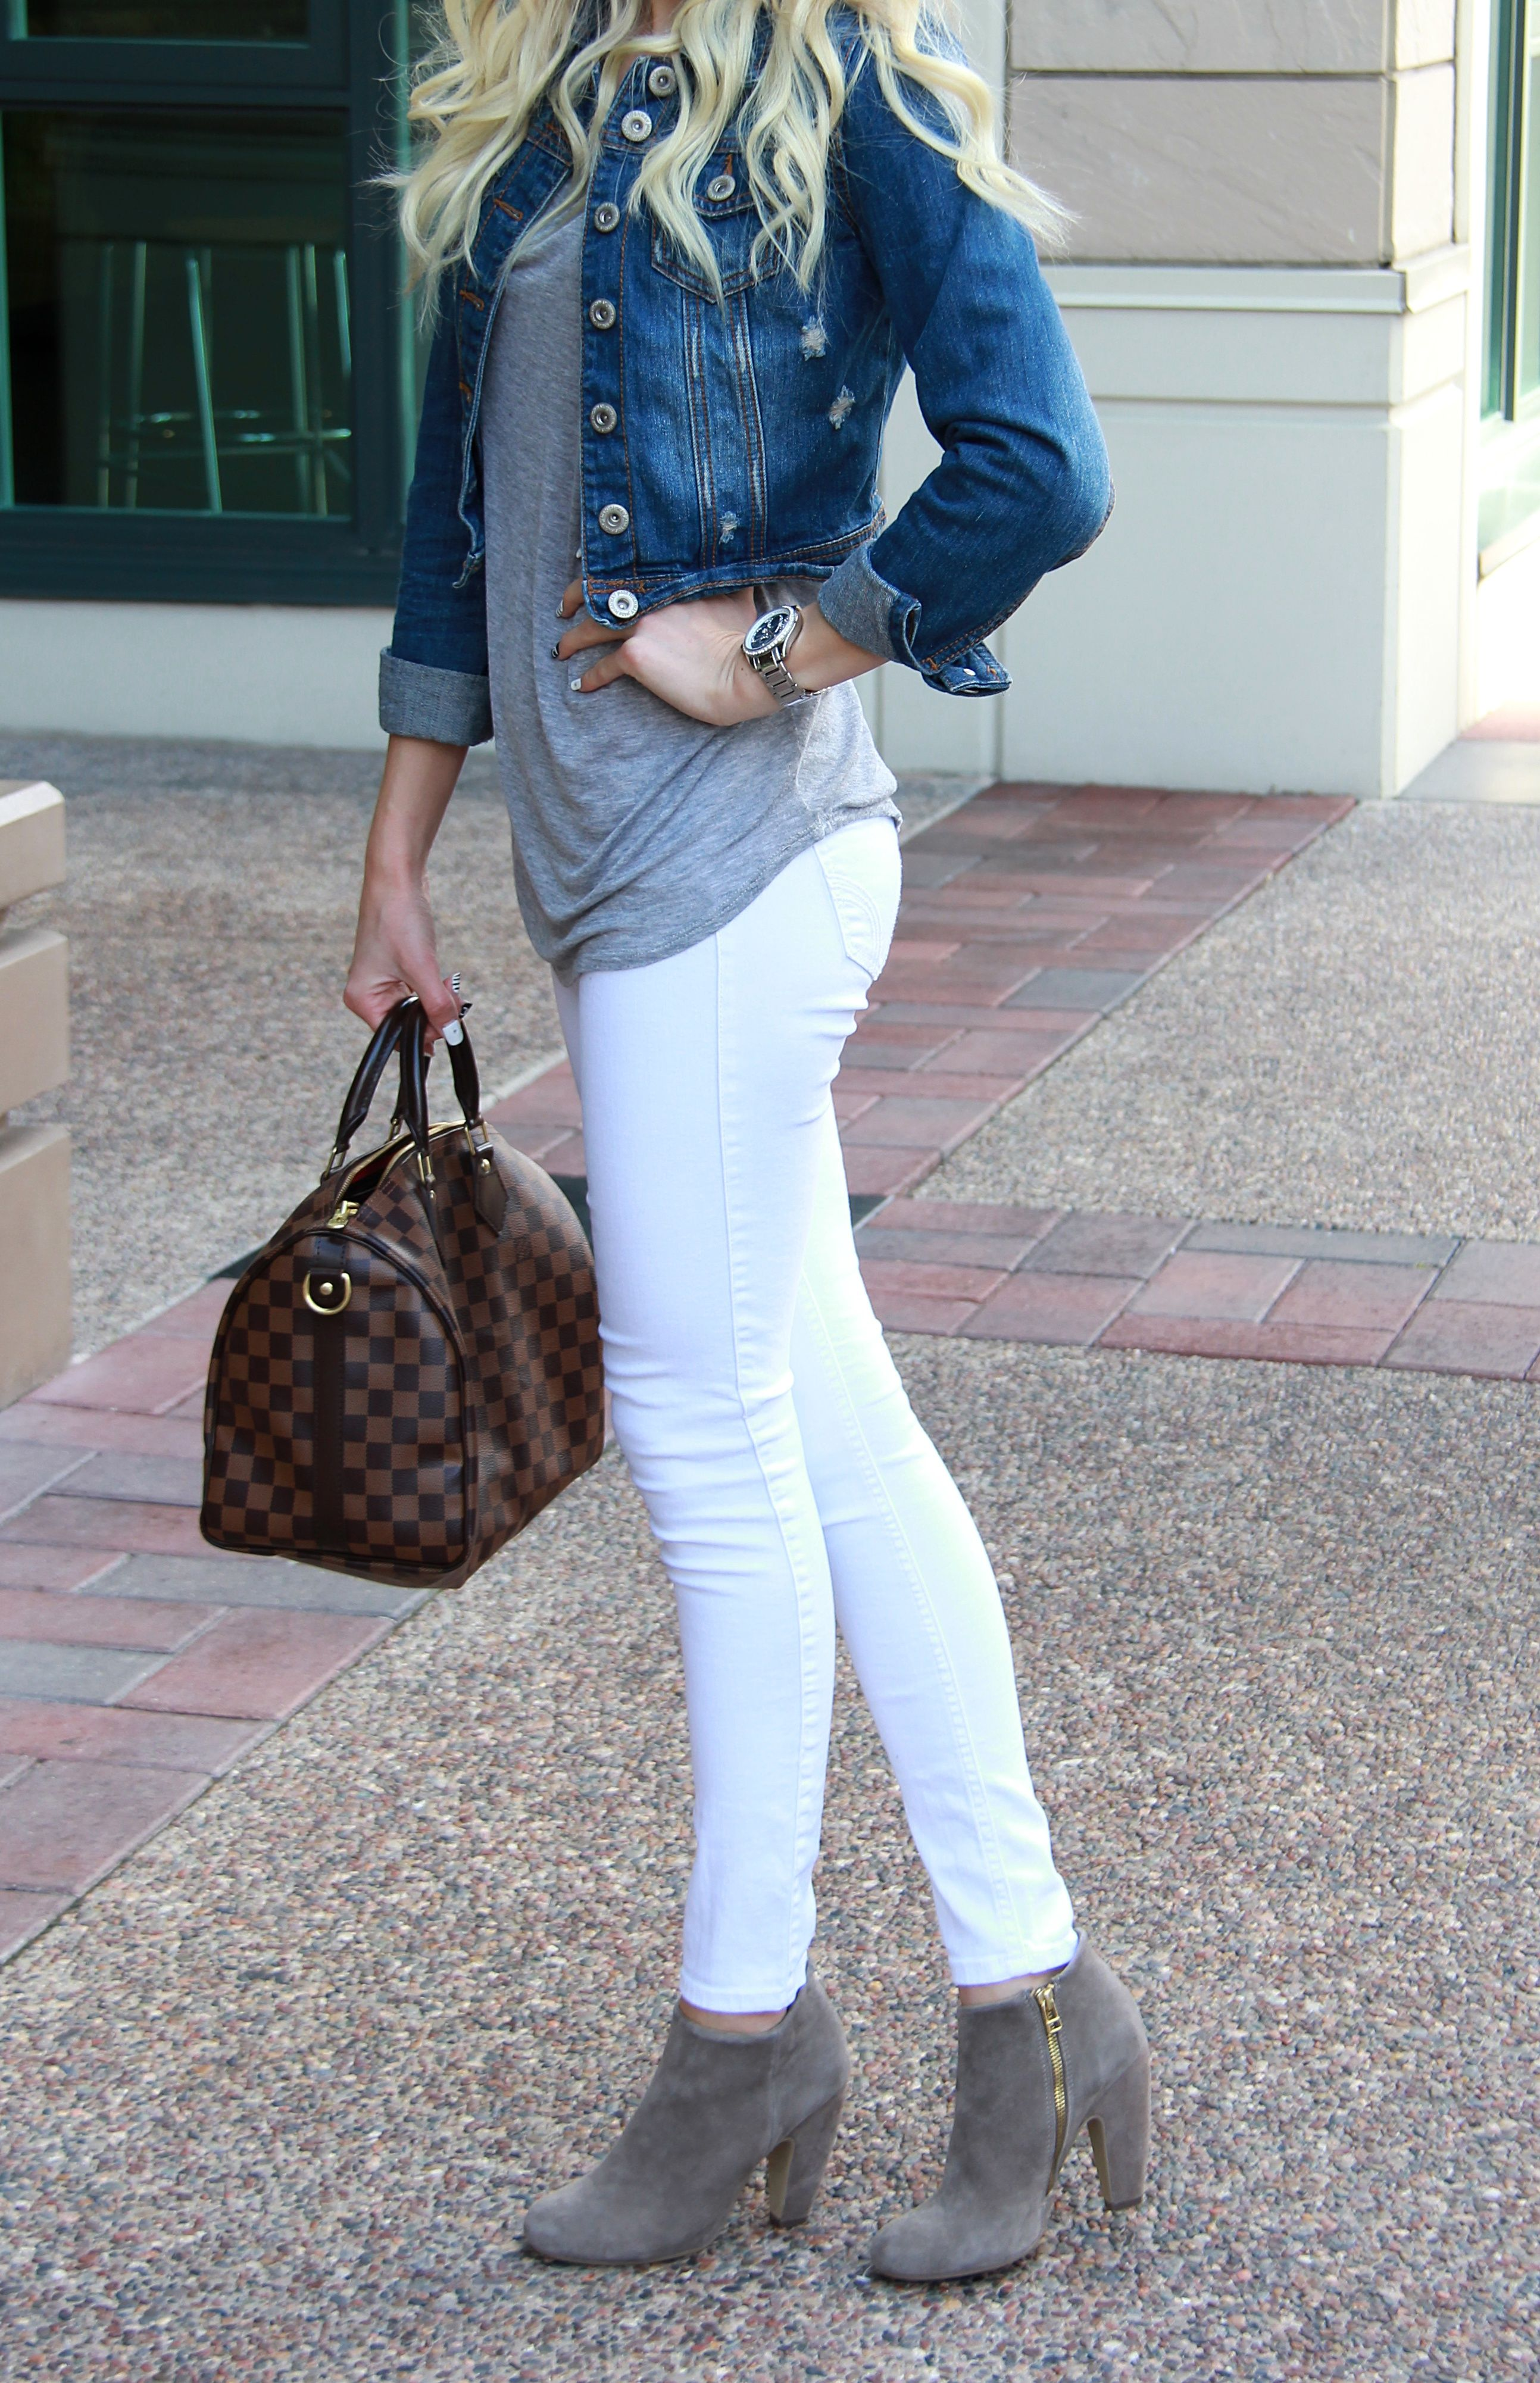 f89cd885bd those grey booties though; Jean Jacket + White Jeans + Grey Booties ...